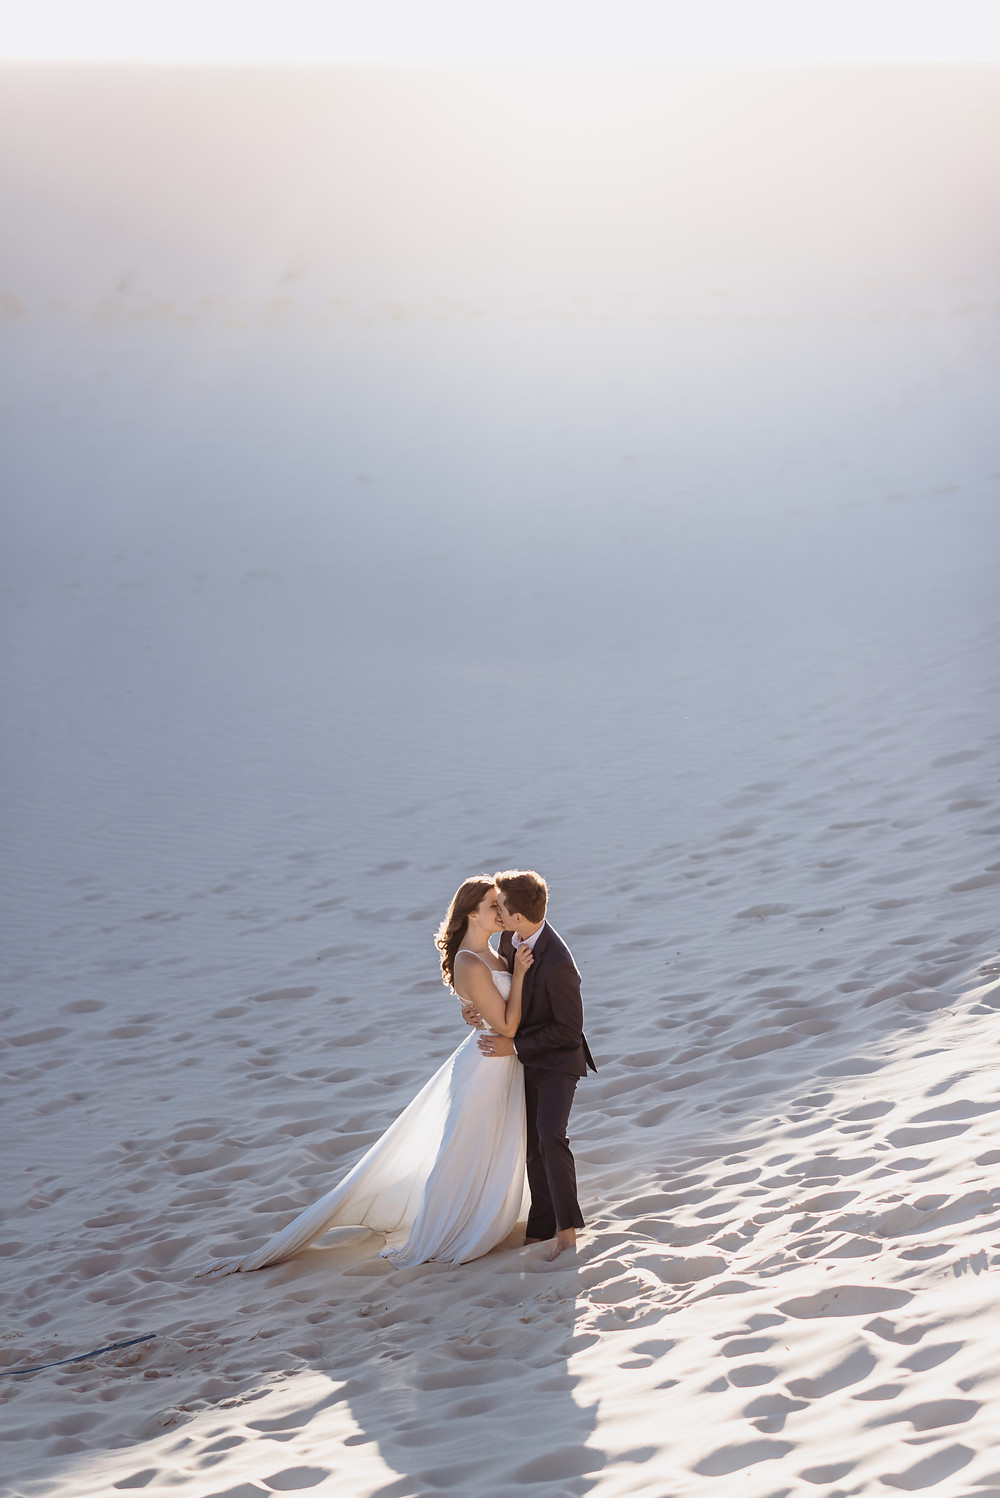 couple has their arms wrapped around each other during their elopement ceremony. They are sharing their first kiss. the sun light creeps over the sandhills in the background creating a soft, ethereal like glow